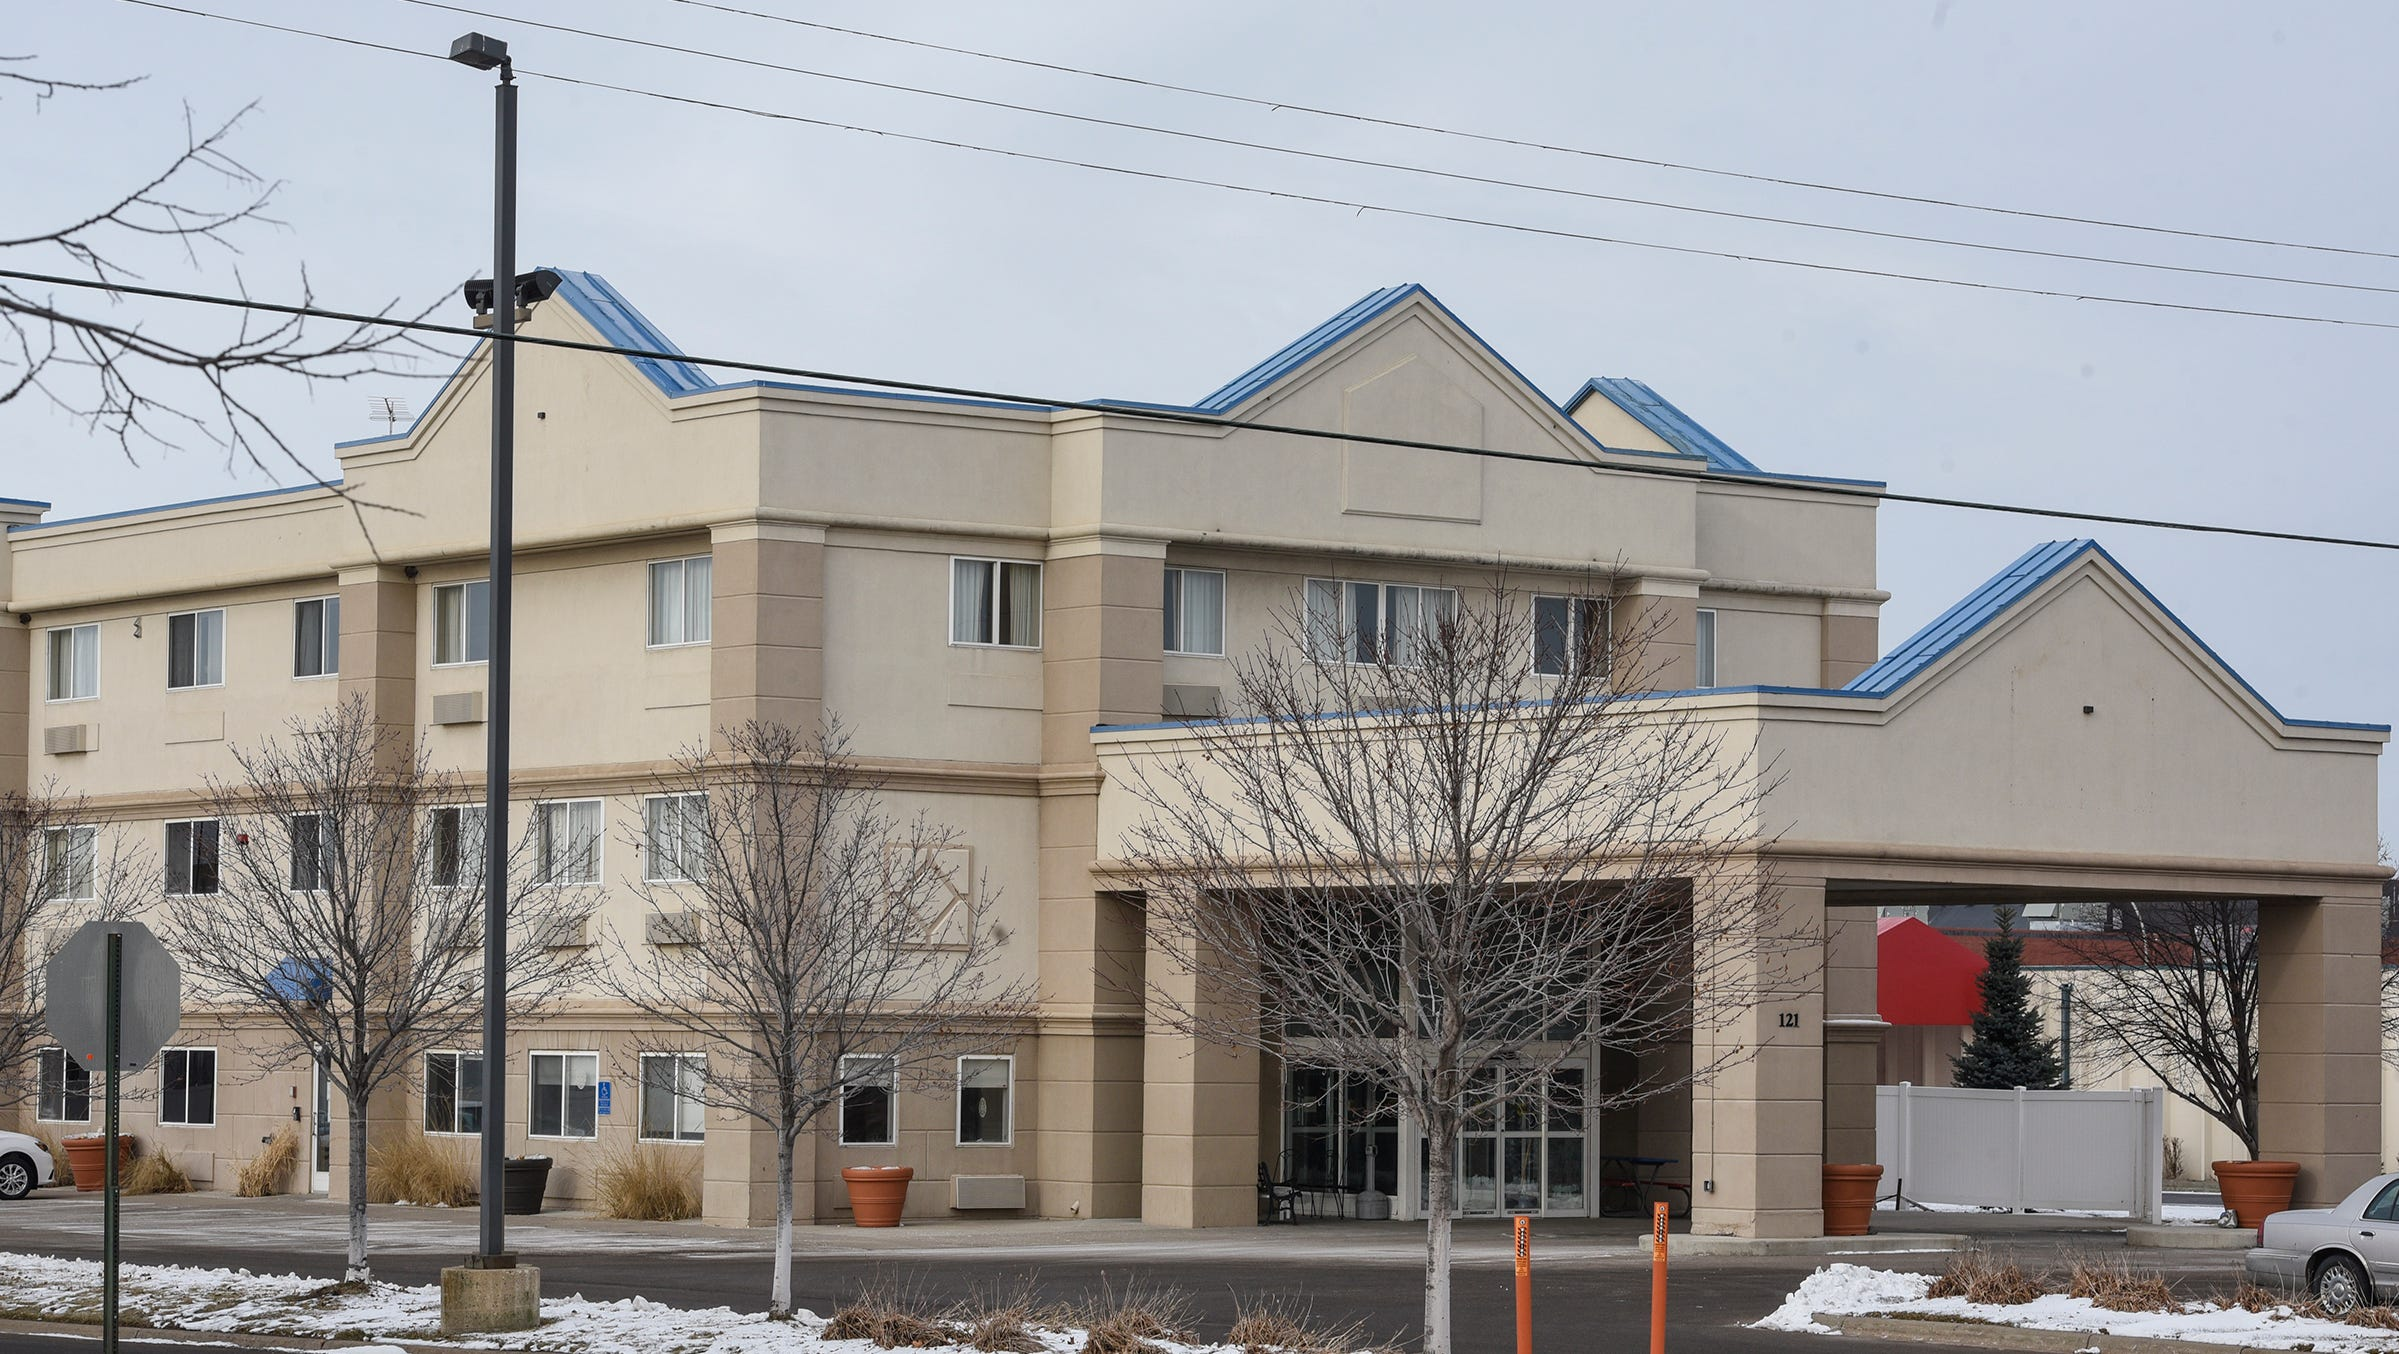 The Passages facility at 121 Park Avenue South is pictured Tuesday, Dec. 11, in St. Cloud.